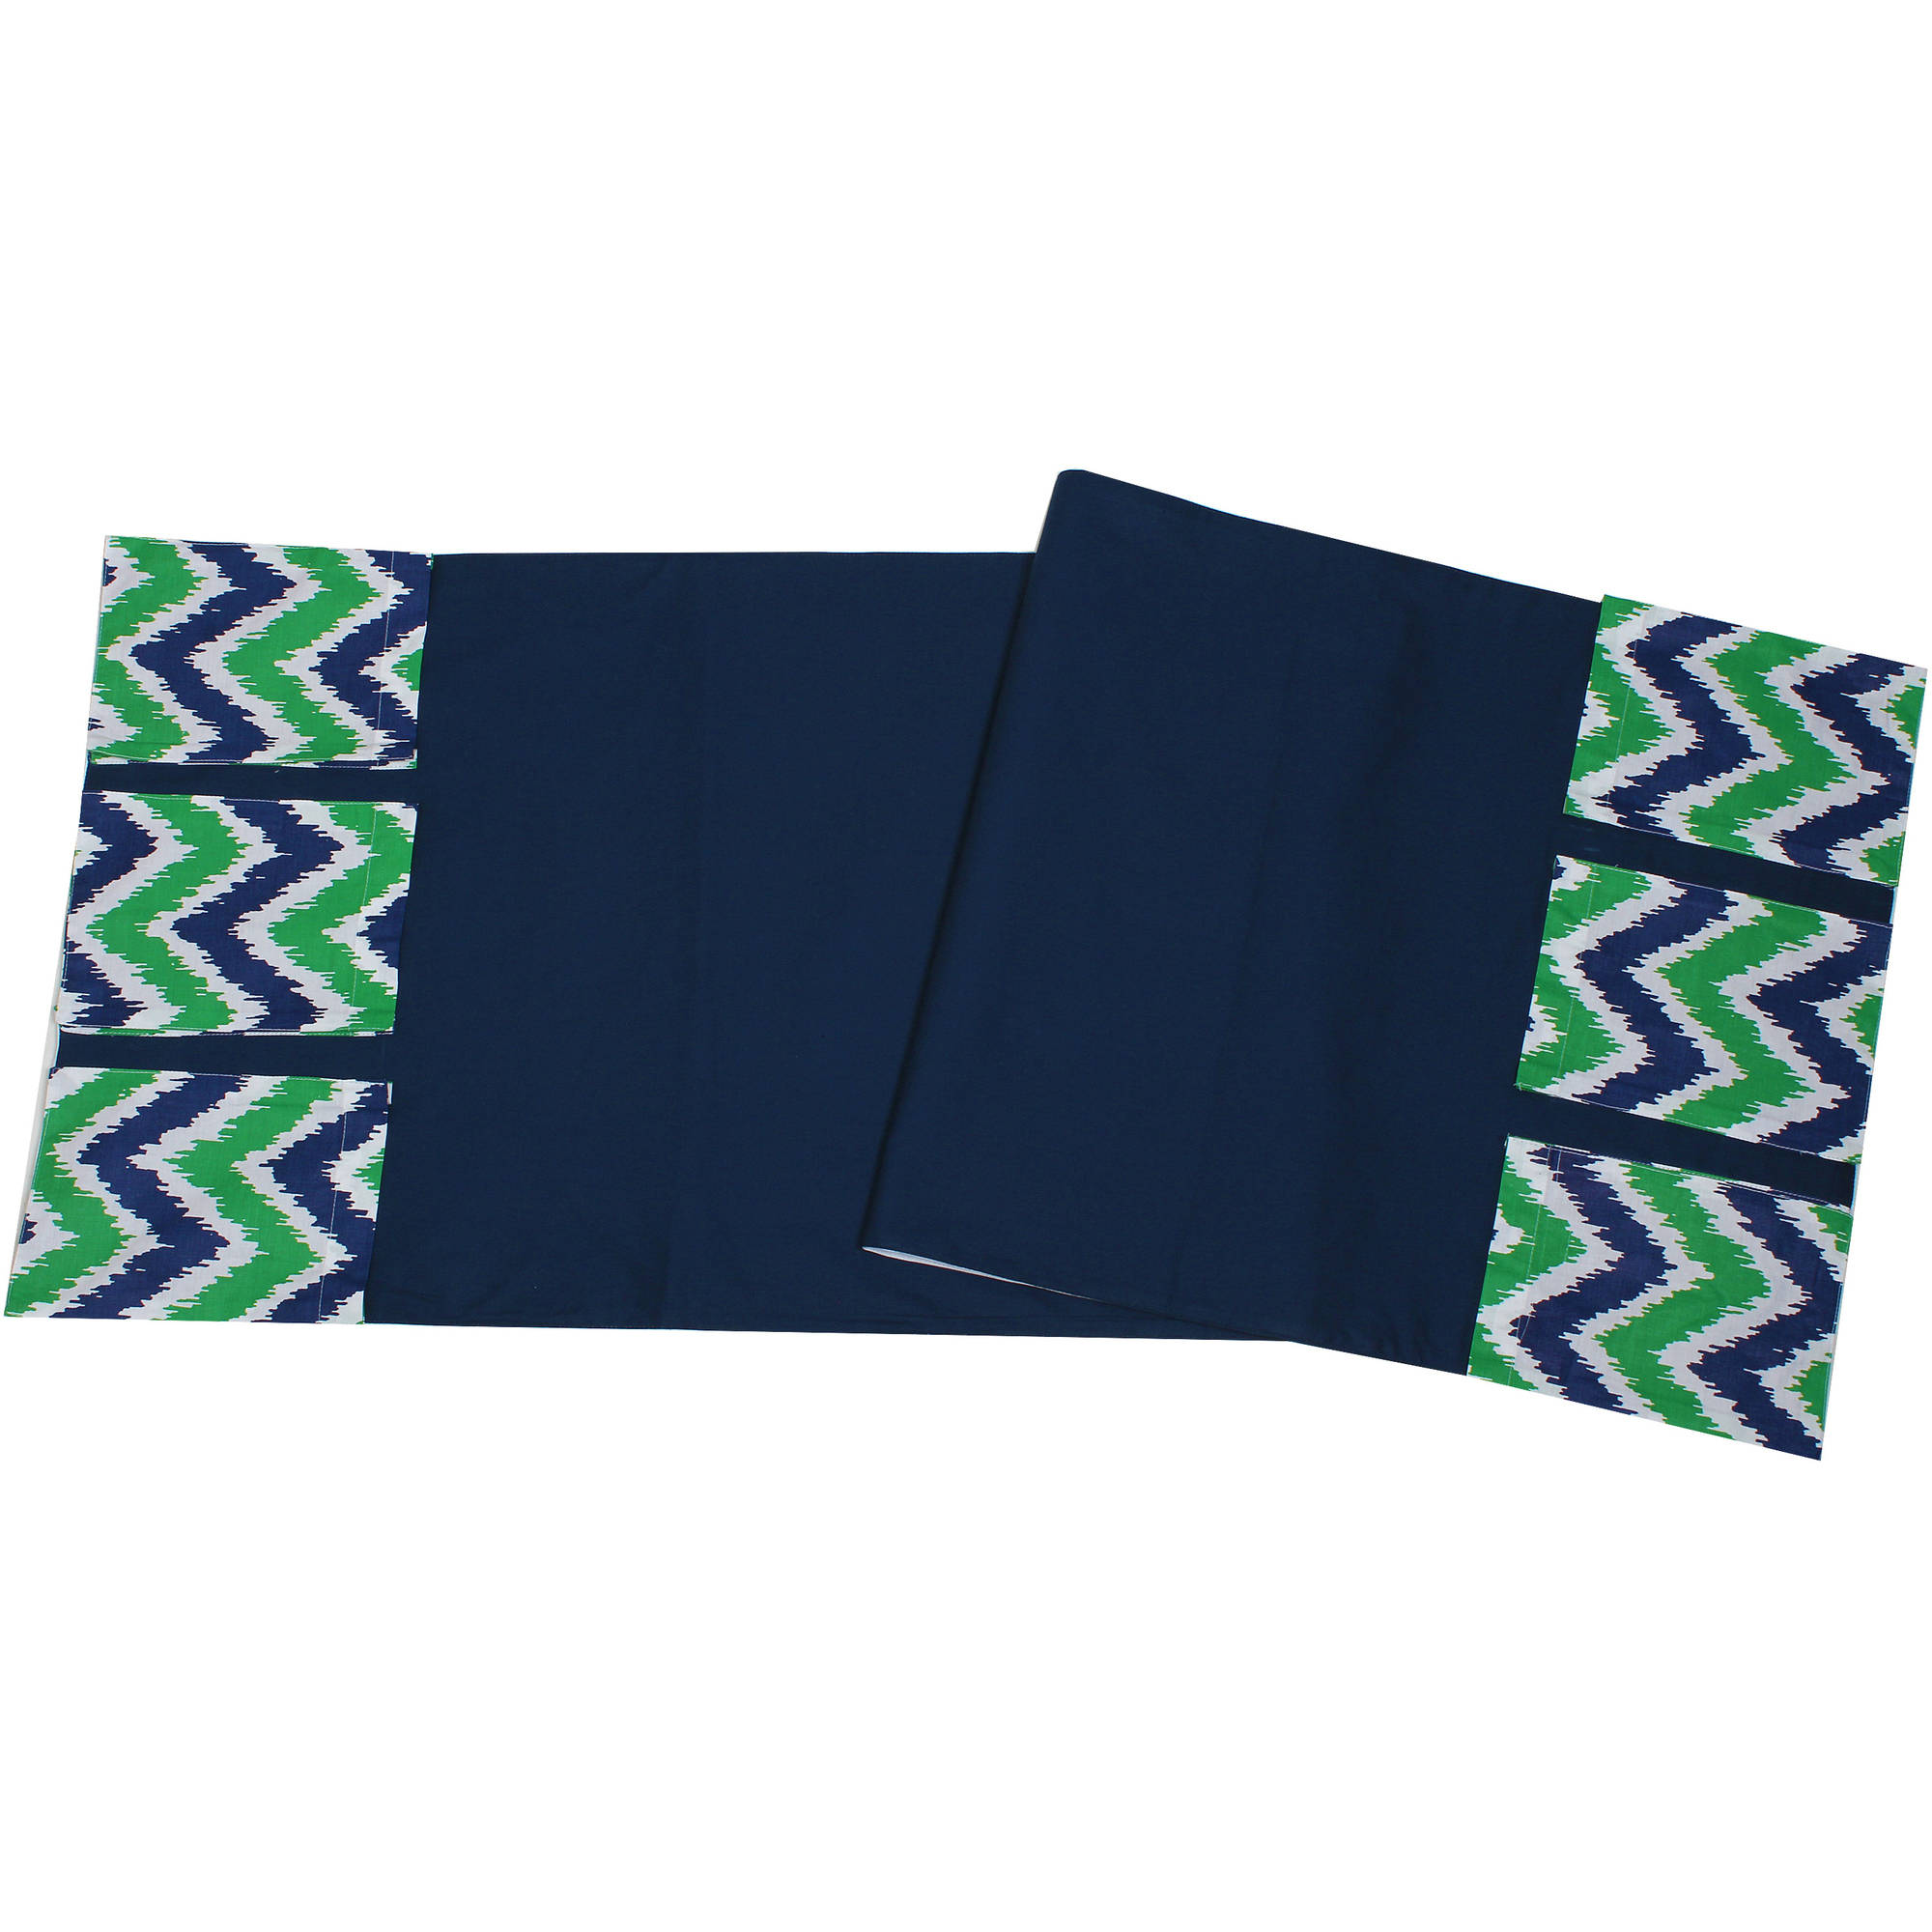 Bacati - MixNMatch Navy/Green Zigzag, Changing Table Storage Runner